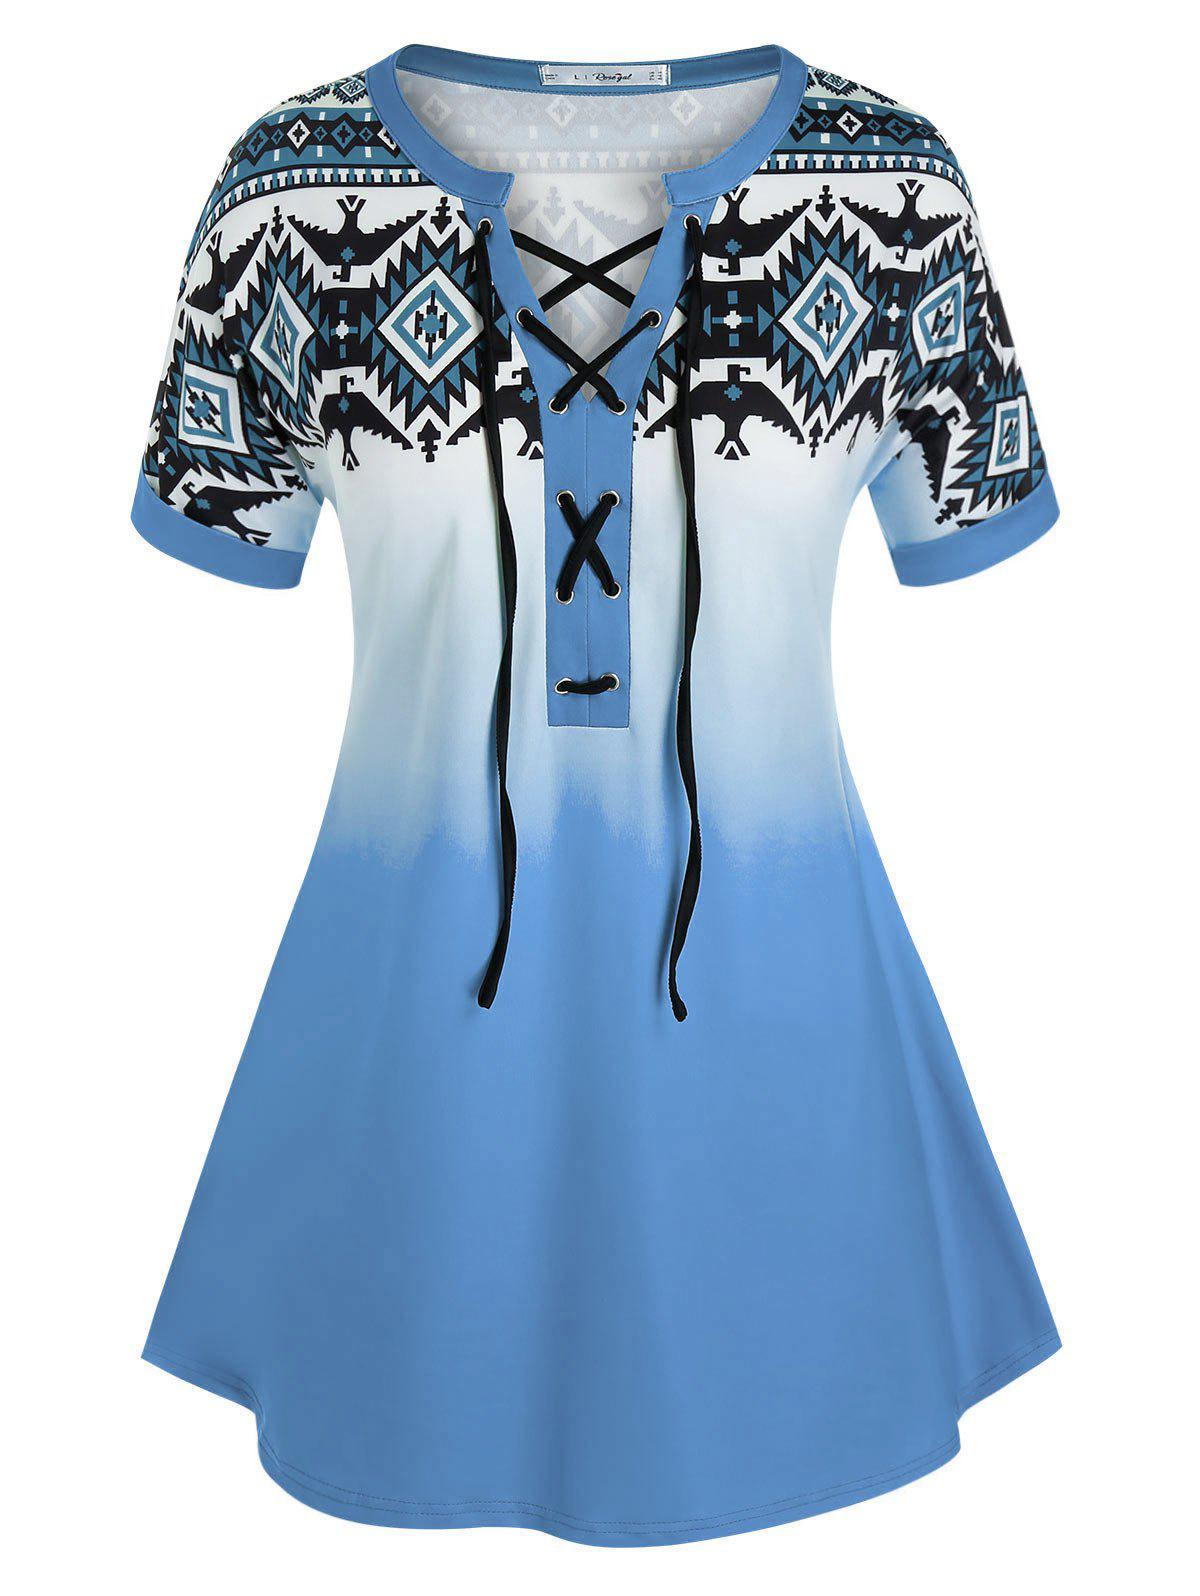 Plus Size Lace-up Geometric Print Cuffed Sleeve Tee - LIGHT BLUE L